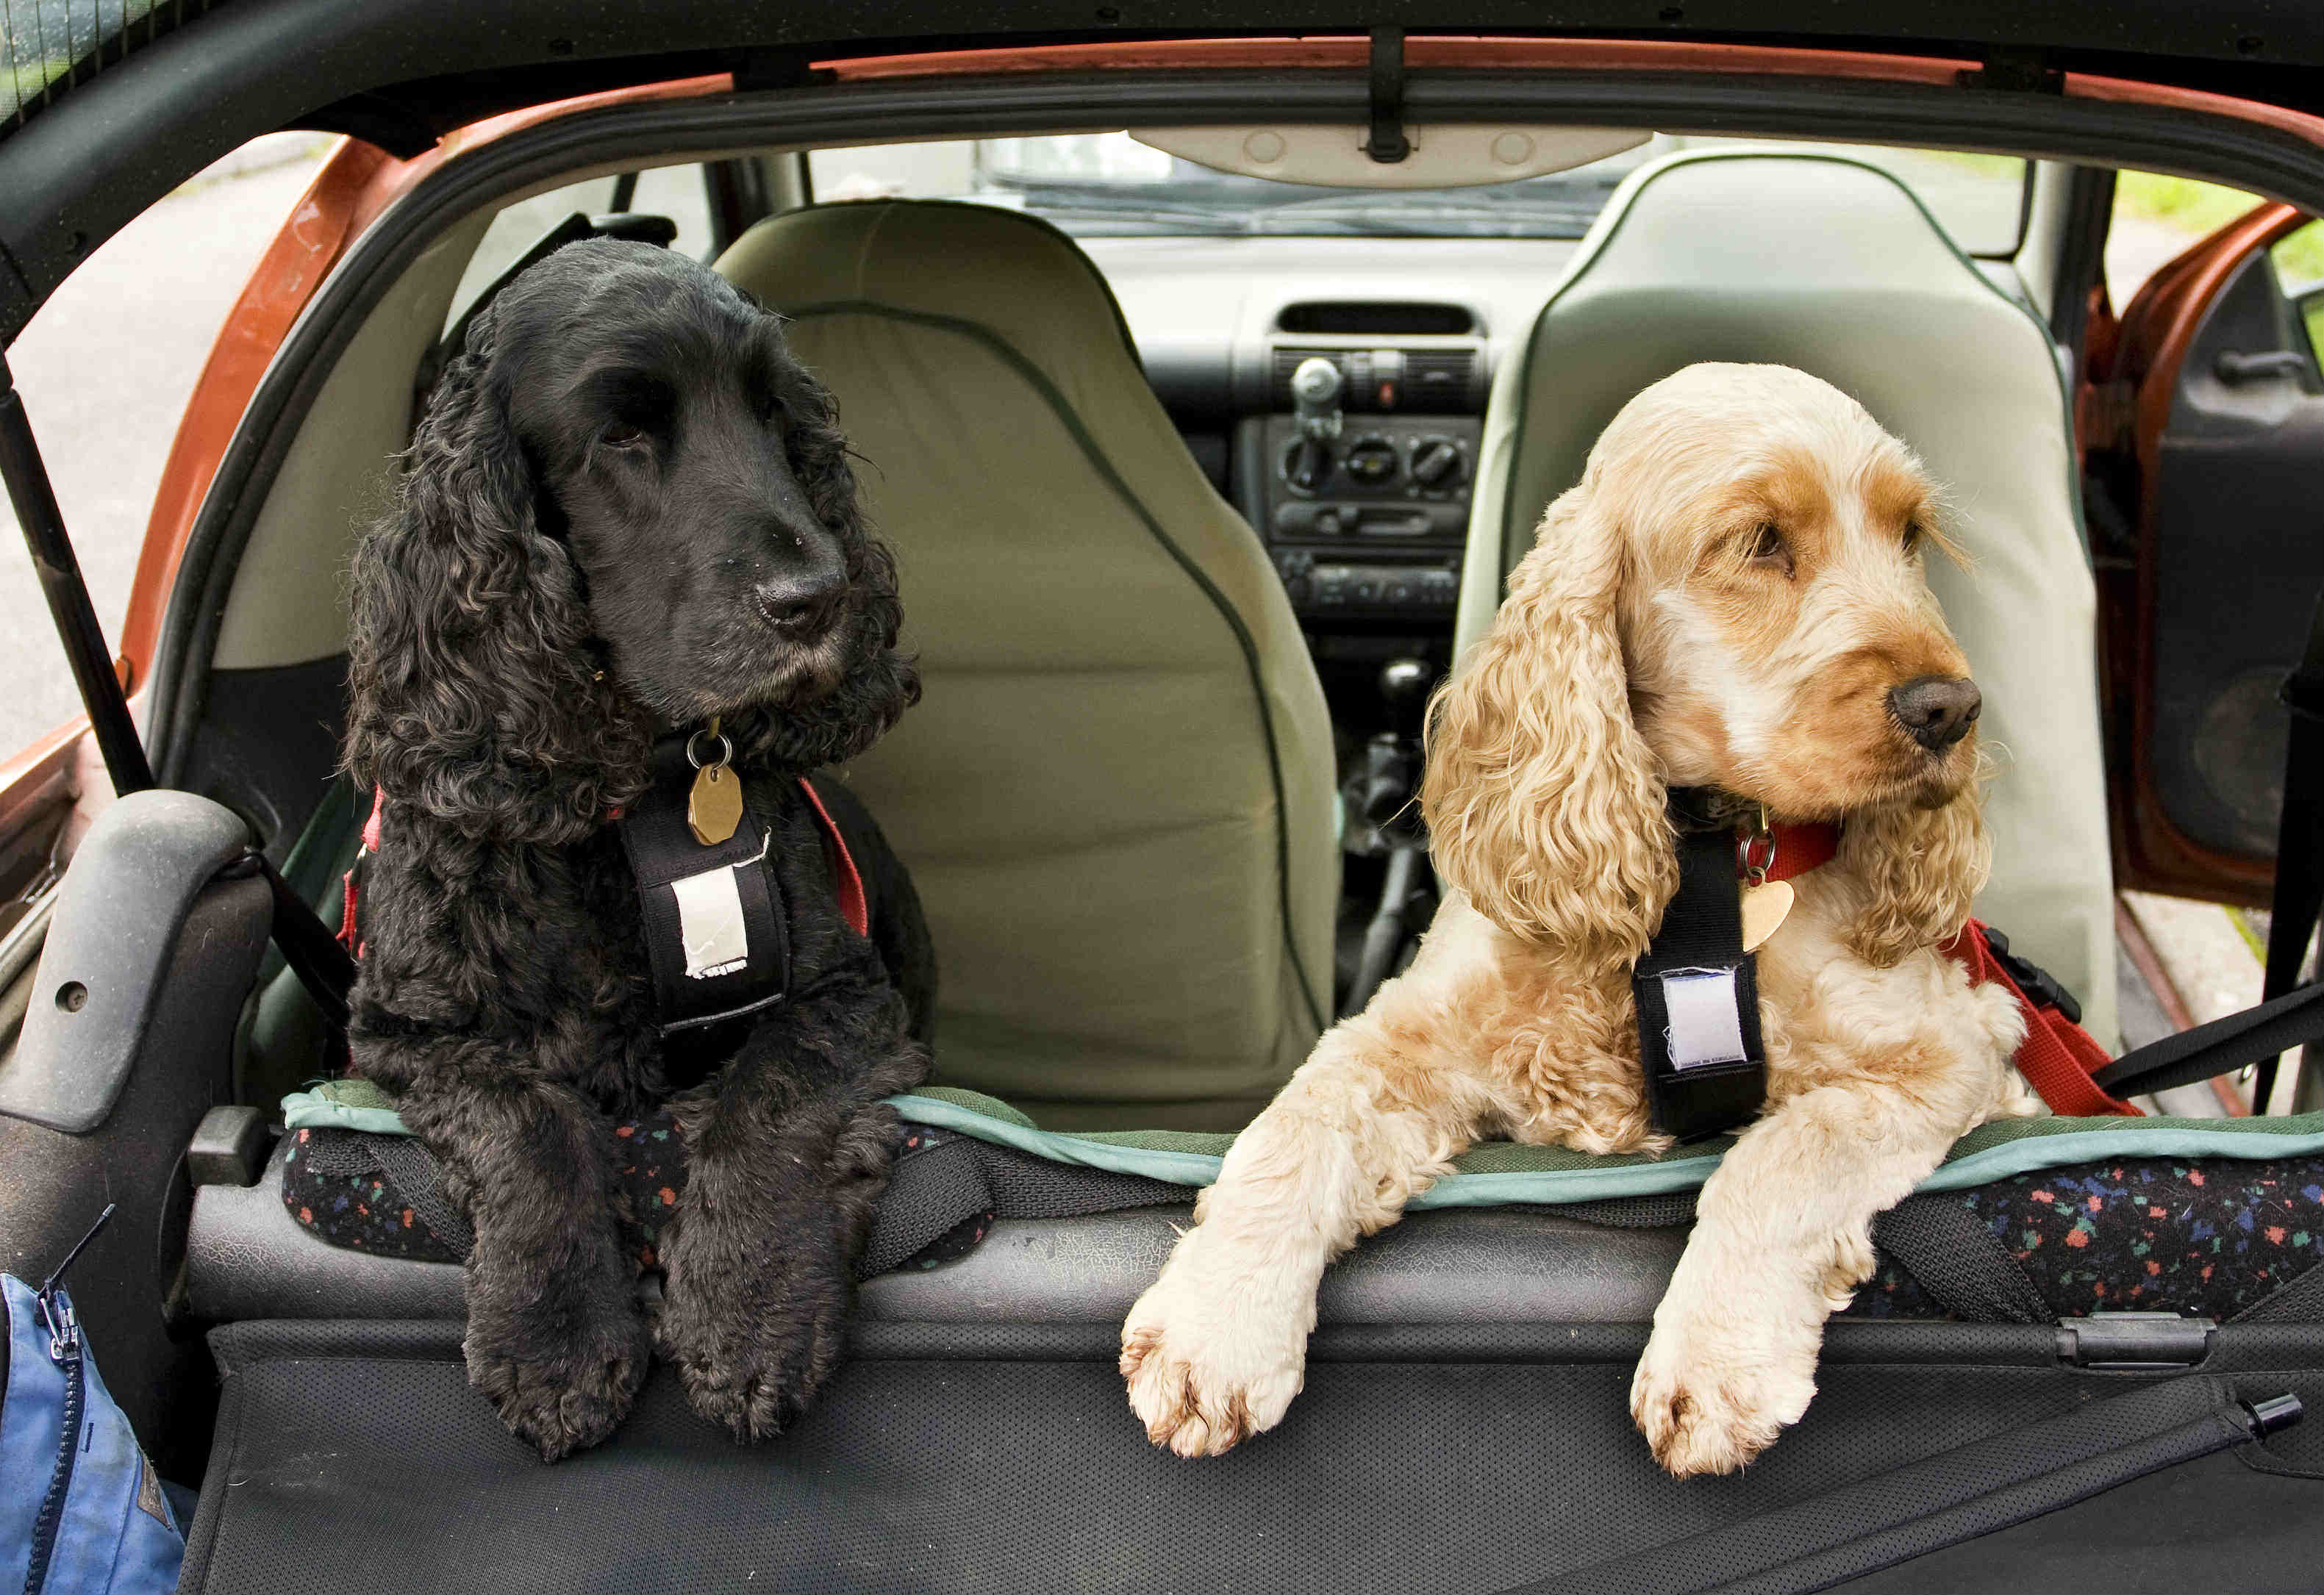 blog/224/What is a suitable restraint for an animal in a car